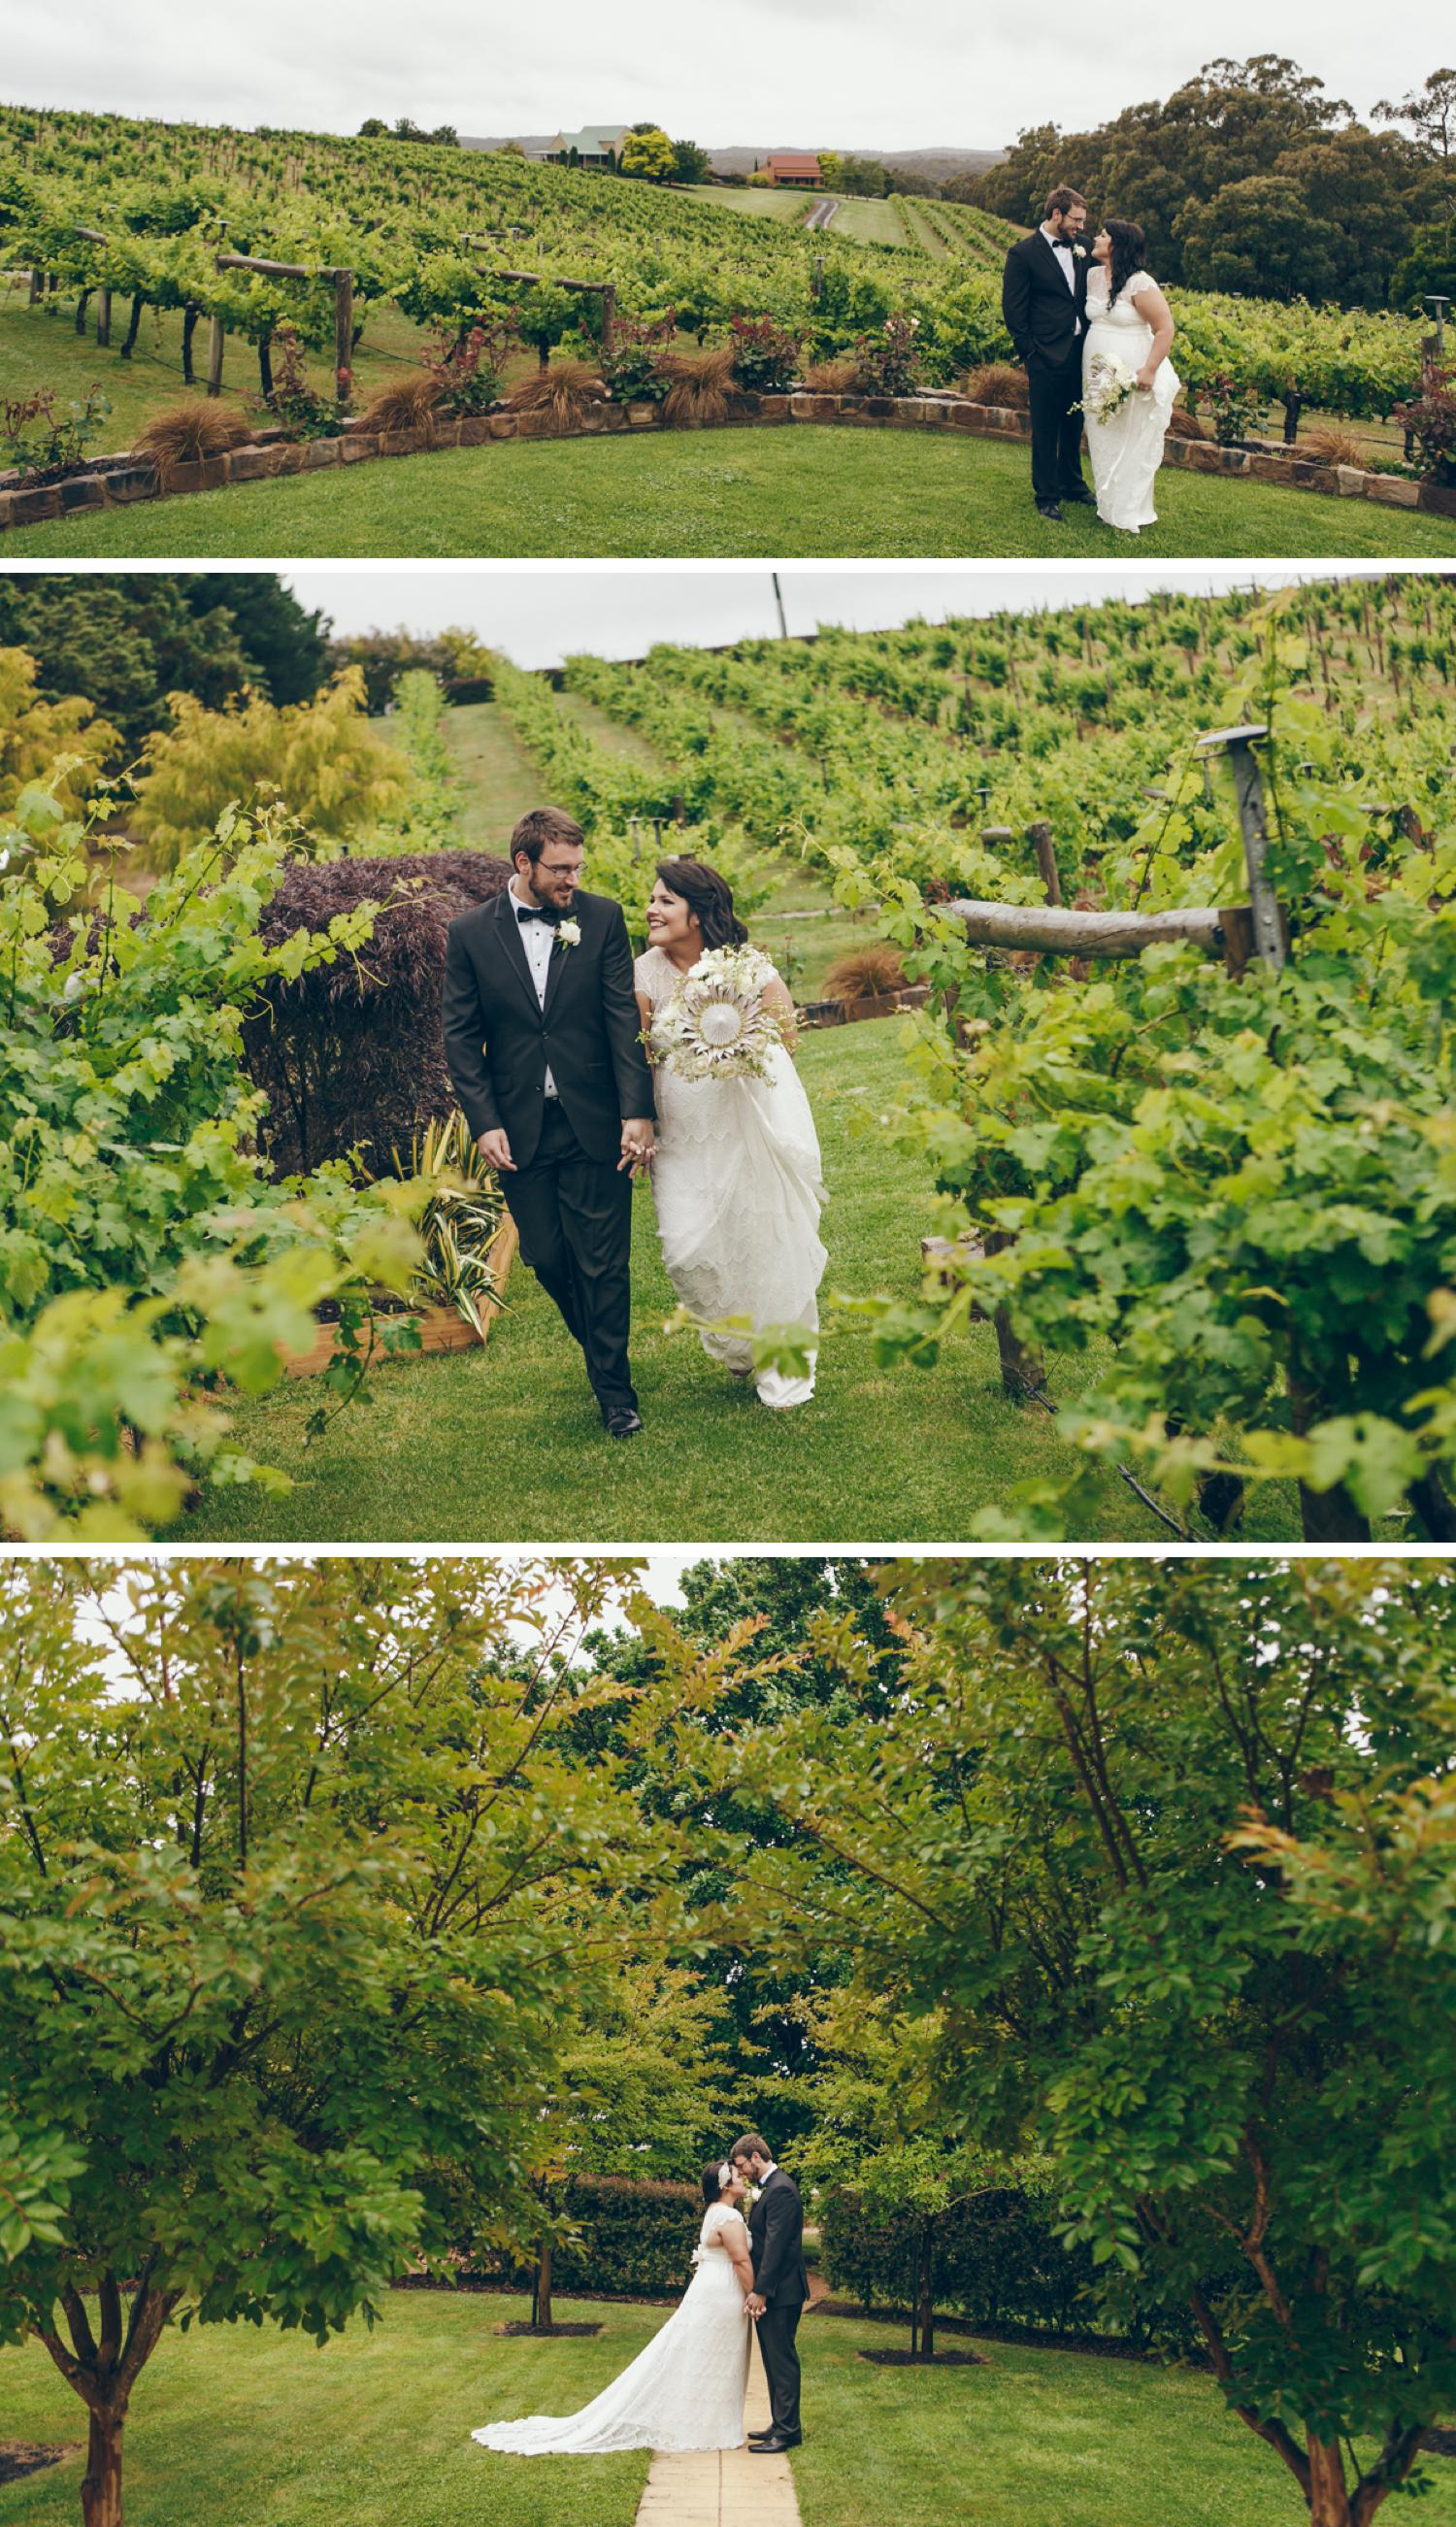 Tom's Cap Vineyard Gippsland Wedding Photo, Vineyard Wedding Photos by Danae Studios, Bride and Groom Embracing